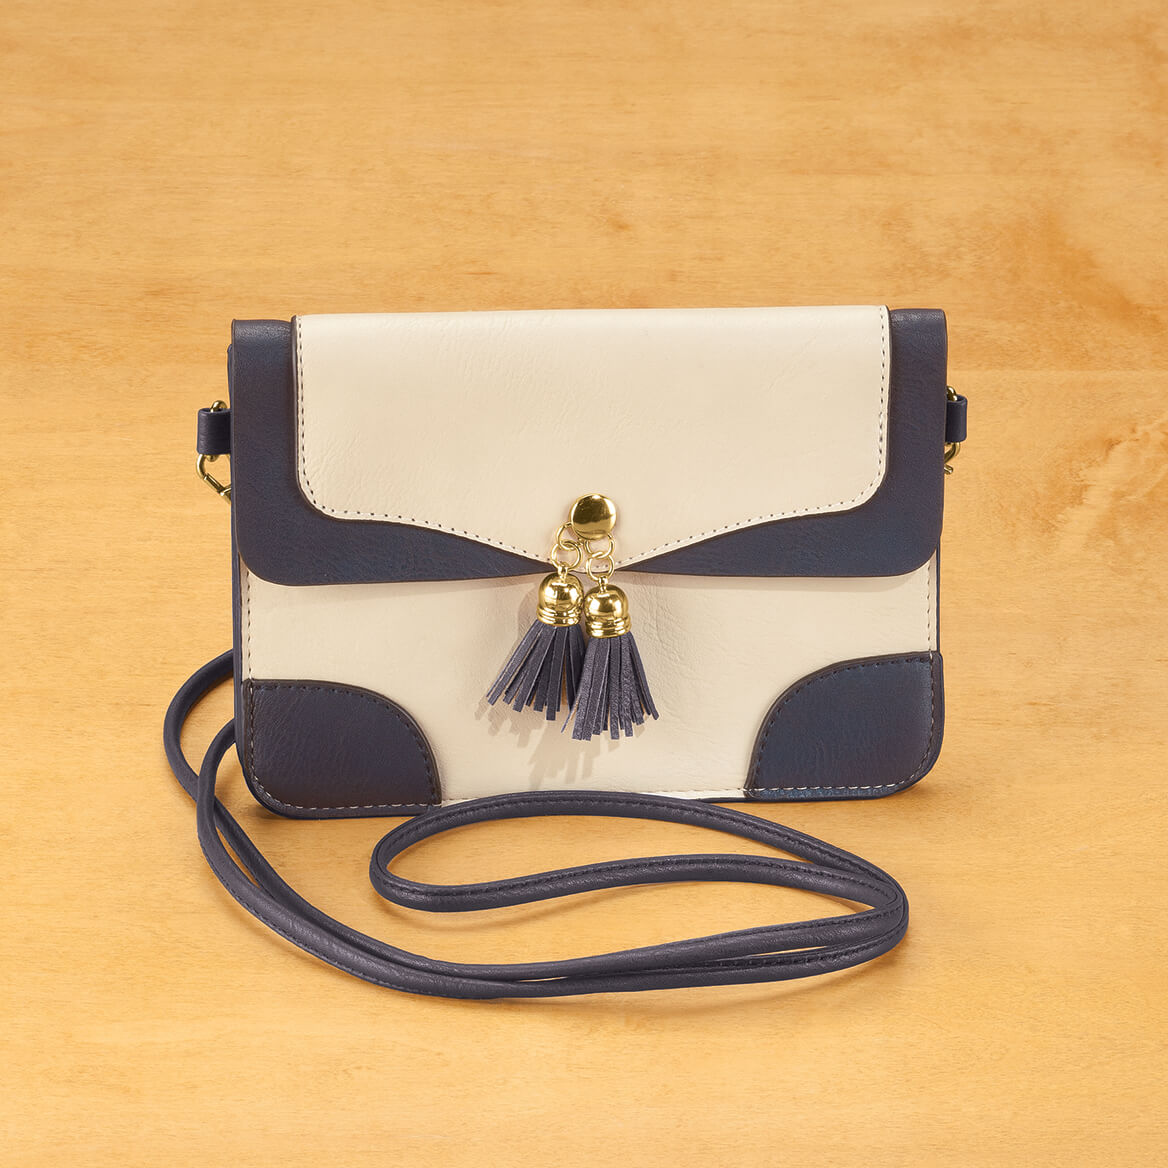 cd31f489a635 ... Urban Energy™ Cross Body Bag With Tassels (taupe navy)-362411